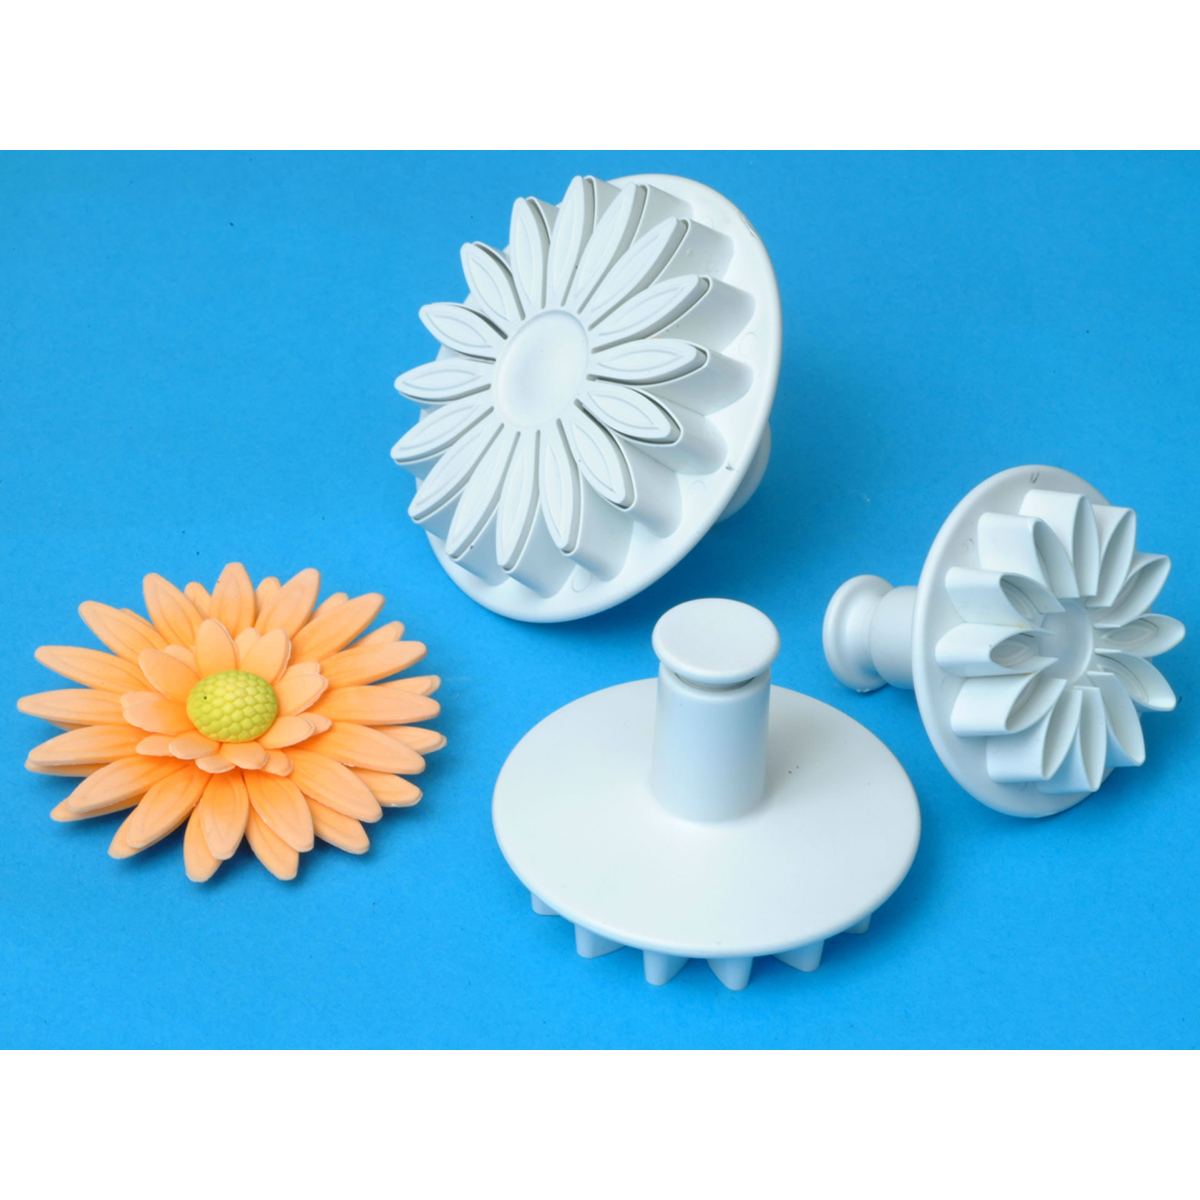 Plunger Cutter Set 3 Pieces-Veined Sunflower/Daisy/Gerbera - Walmart.com